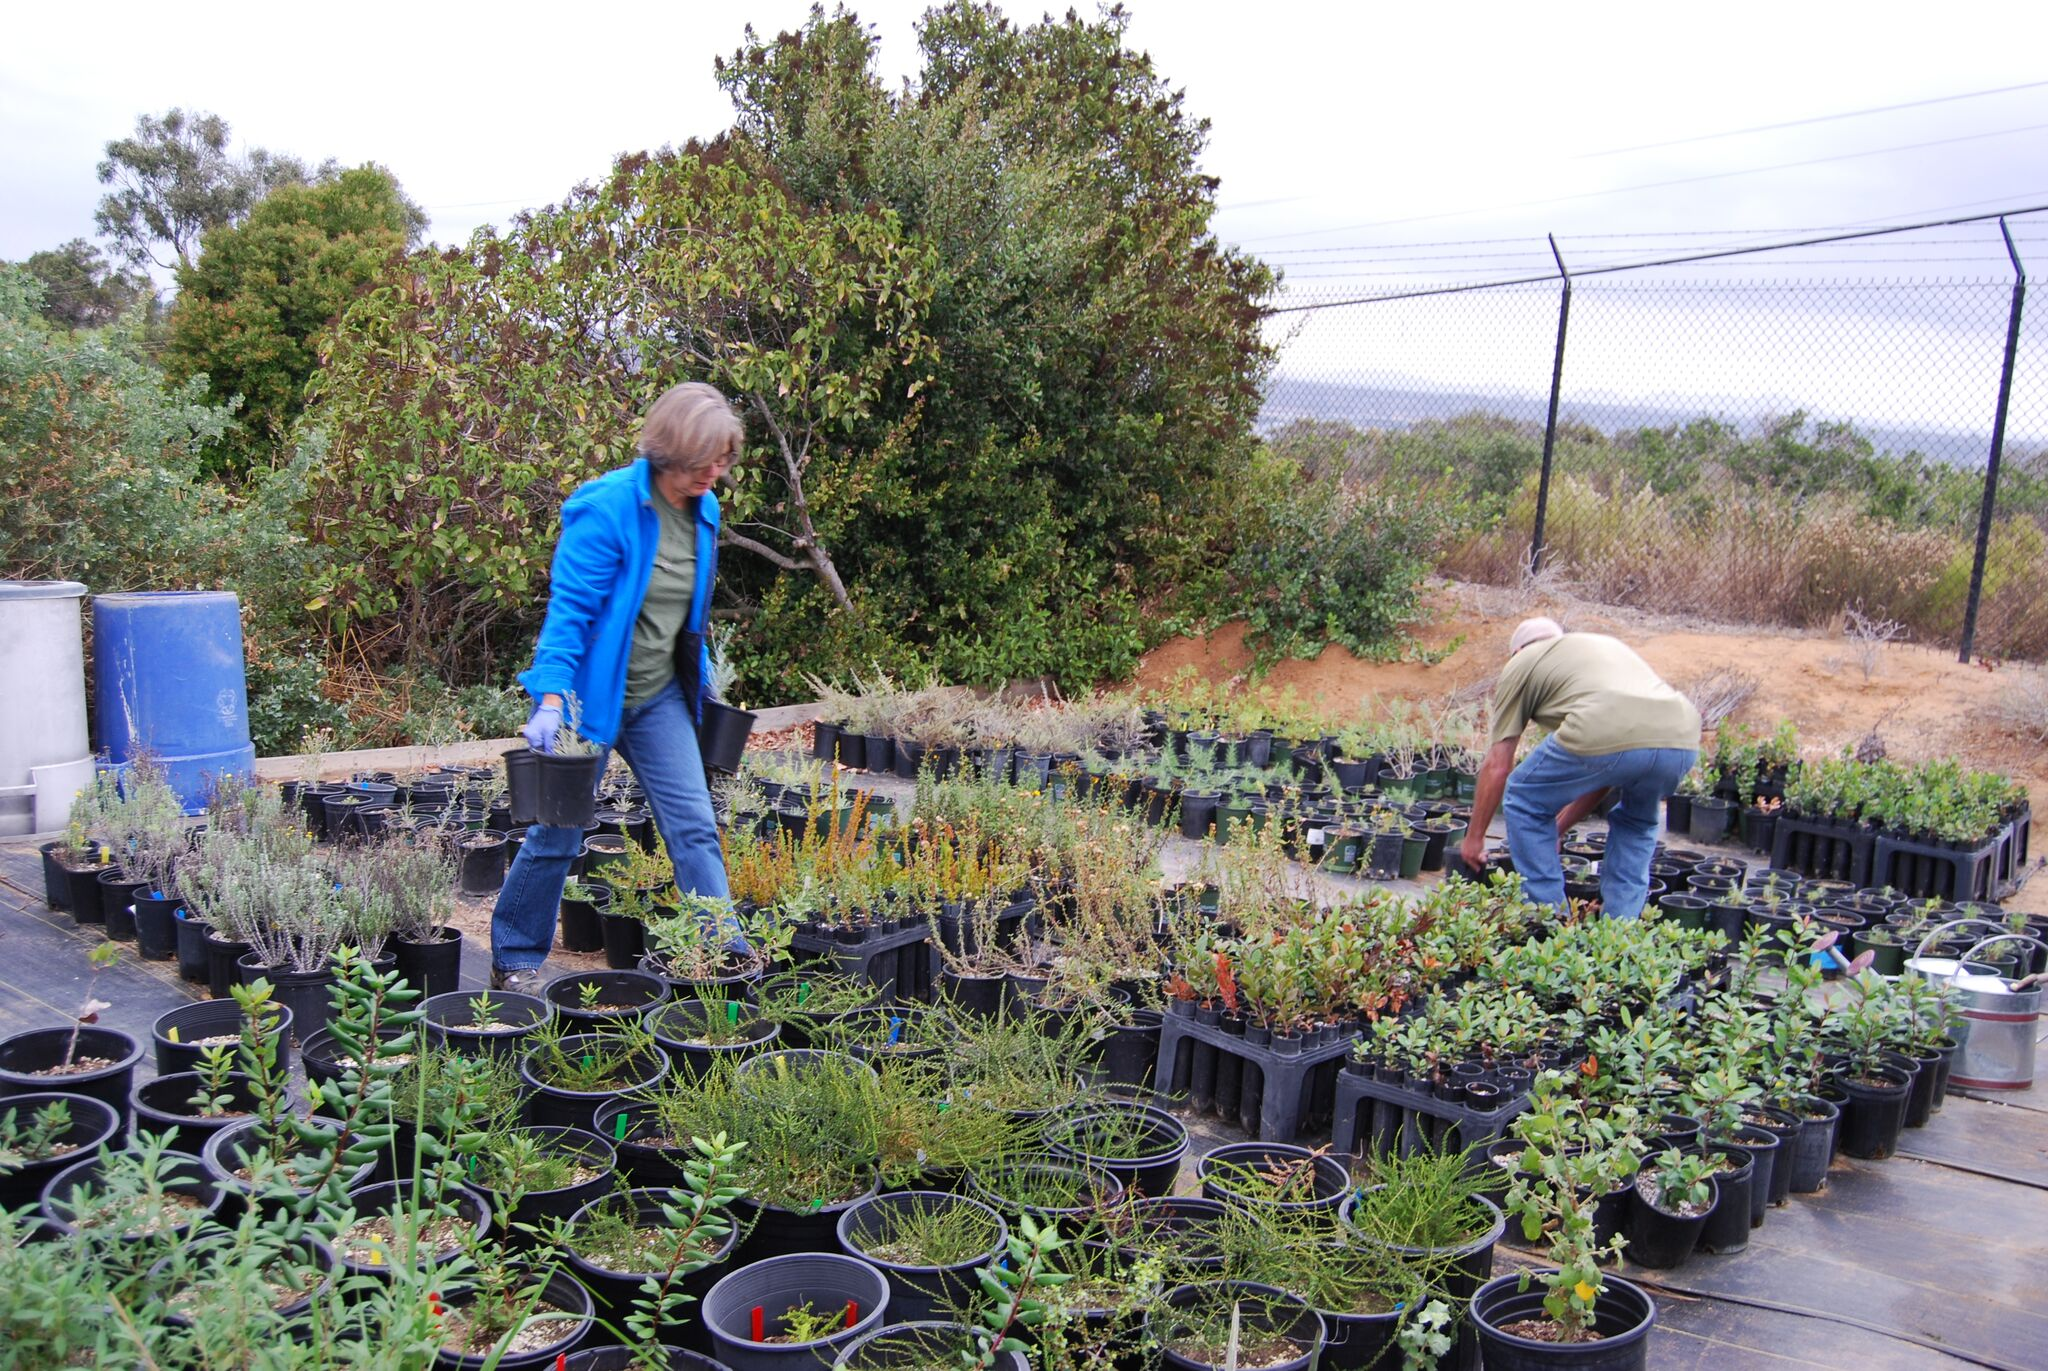 Volunteers collecting the plants that have been grown by staff and volunteers at the National Monument's propagation nursery on Navy property near CNM.